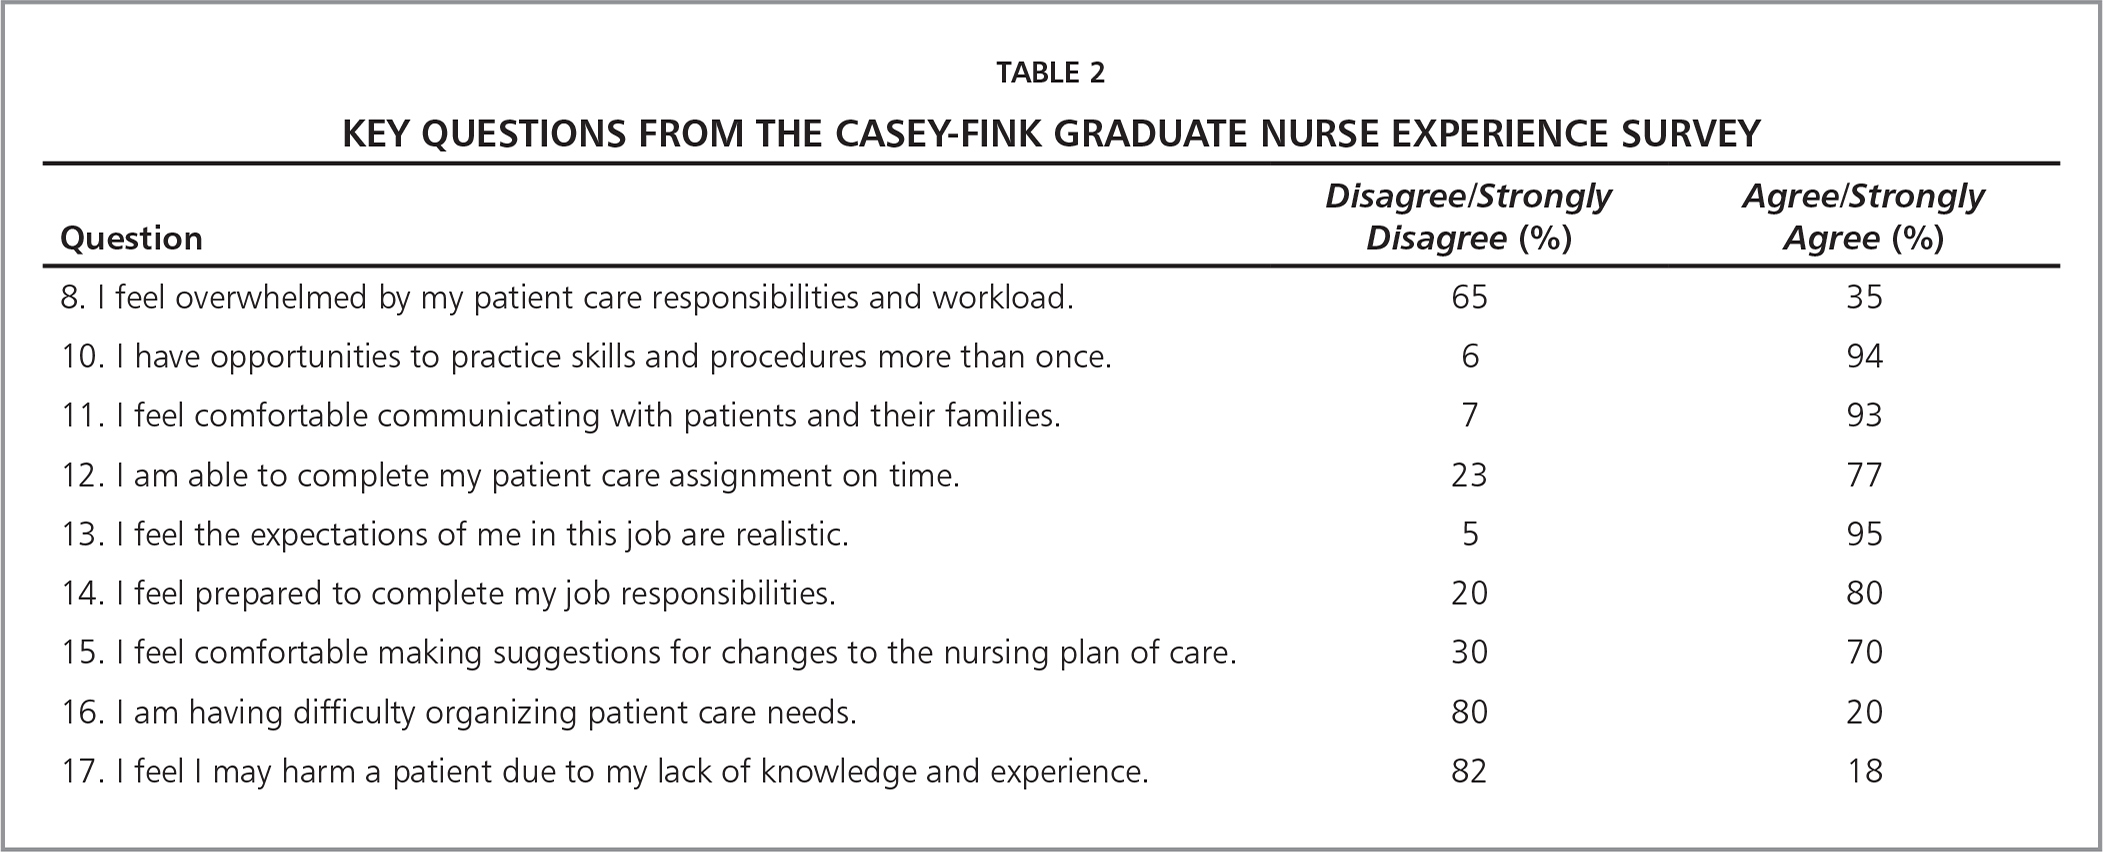 Key Questions from the Casey-Fink Graduate Nurse Experience Survey